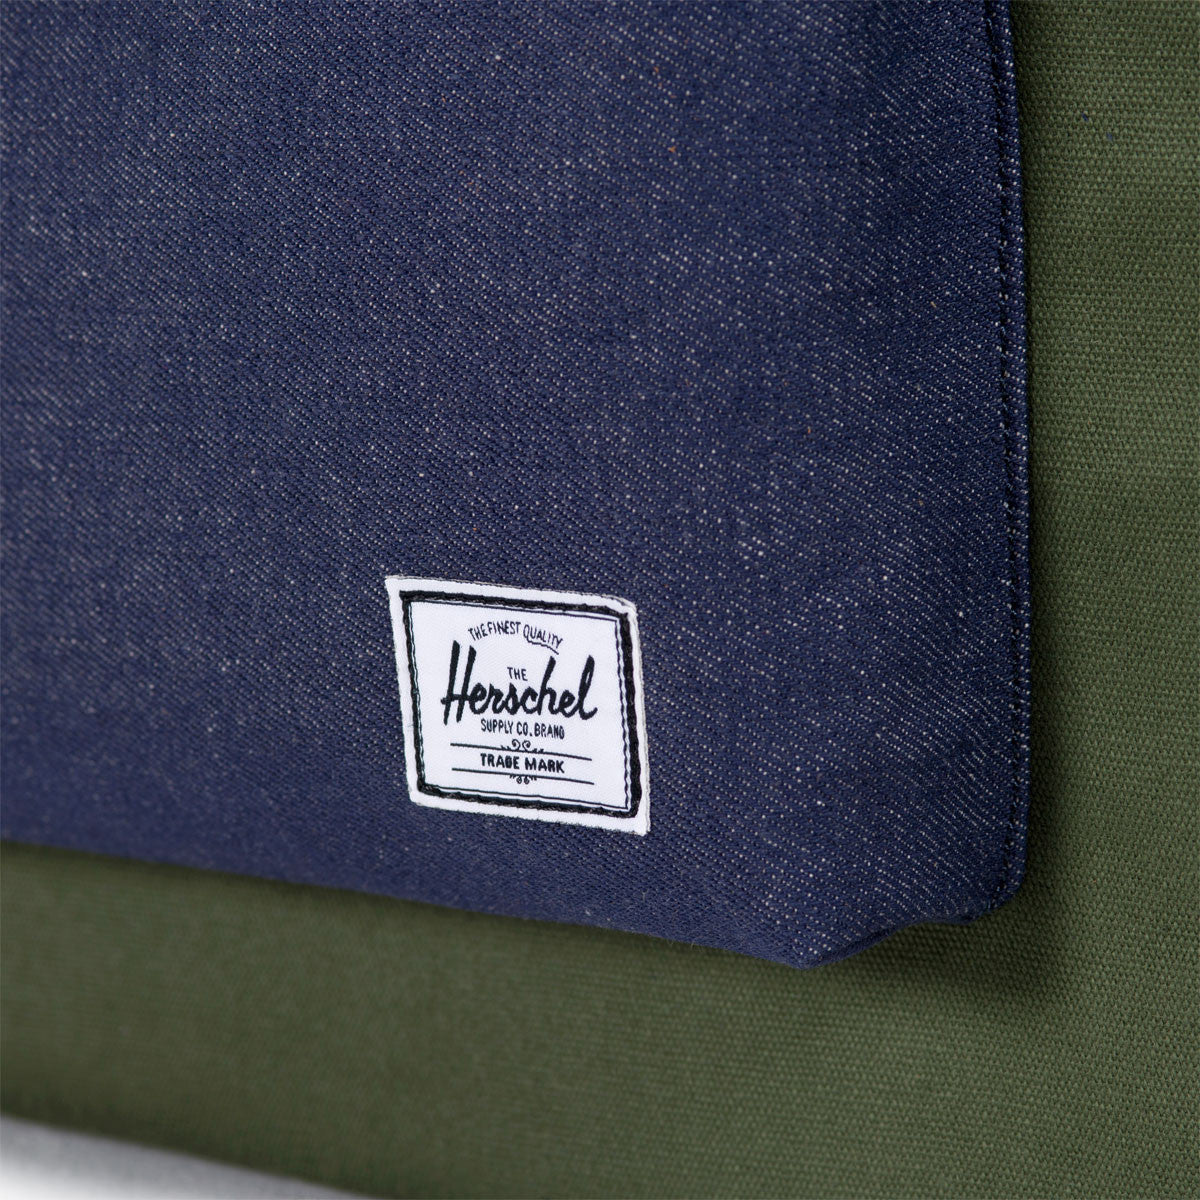 Herschel Supply Co.: Heritage Backpack - Army Coated Cotton Canvas / Indigo Denim (Select Series) detail 1